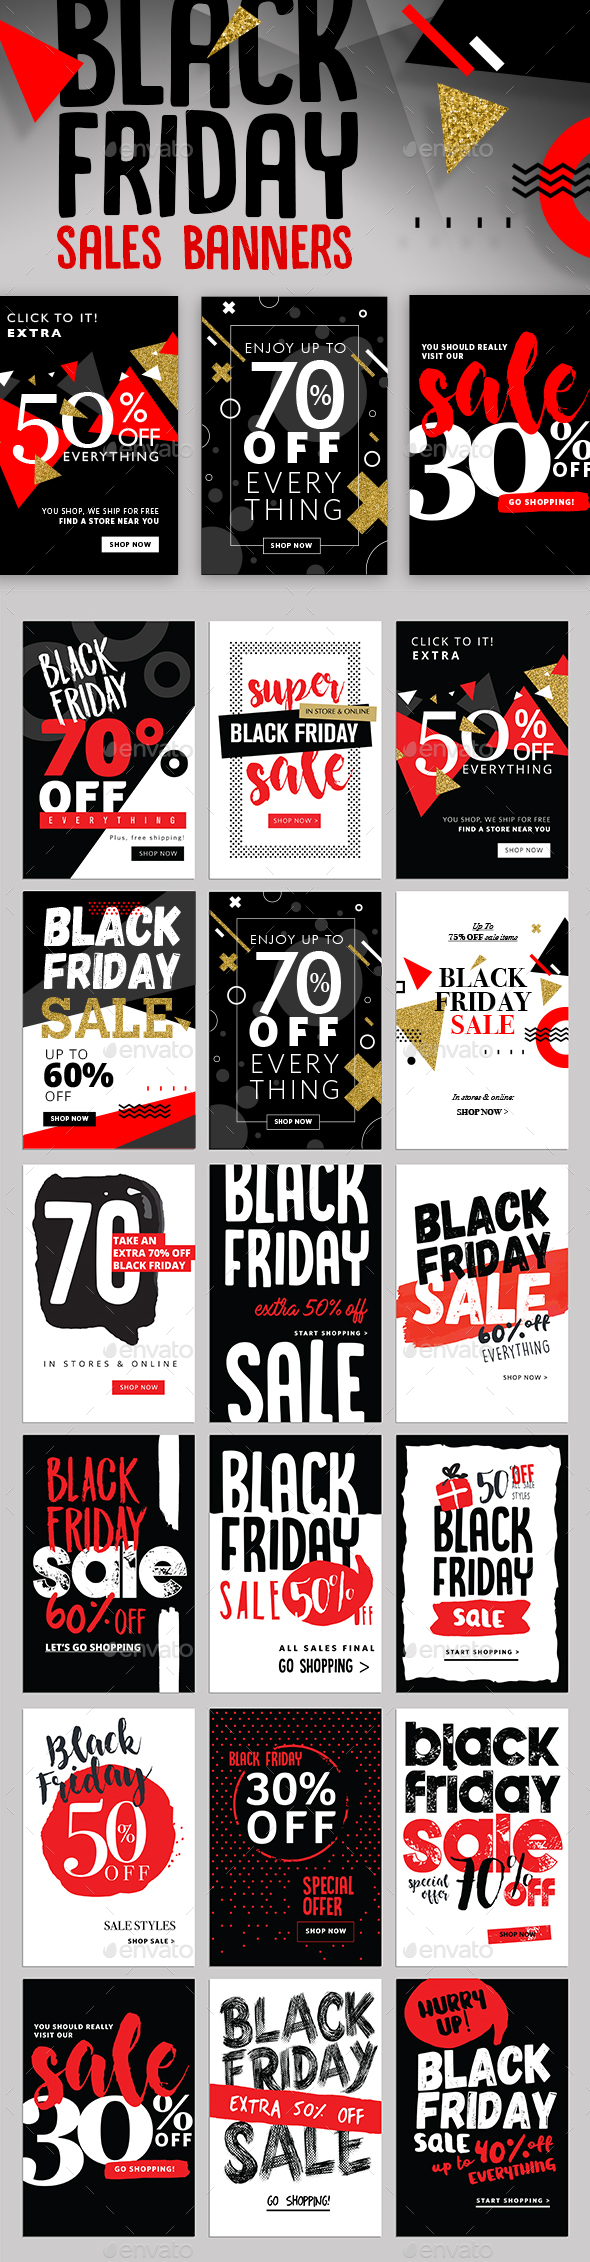 Black Friday Sales Banners - Banners & Ads Web Elements